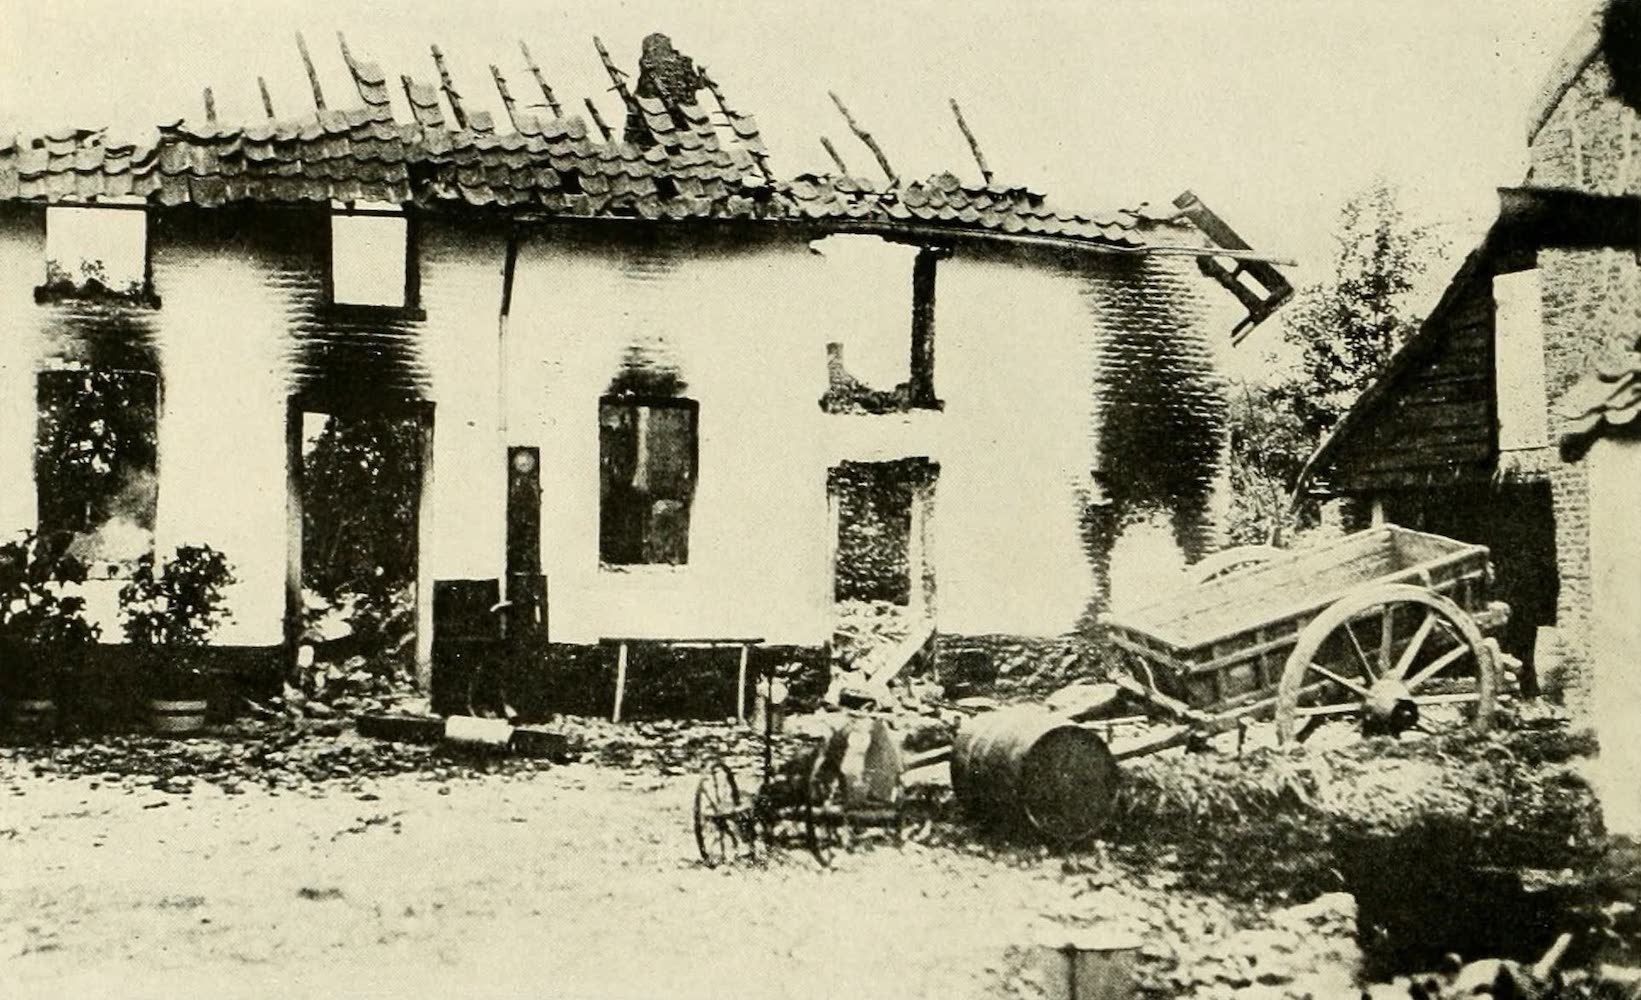 Laird & Lee's World's War Glimpses - Destroyed By the German Troops (1914)